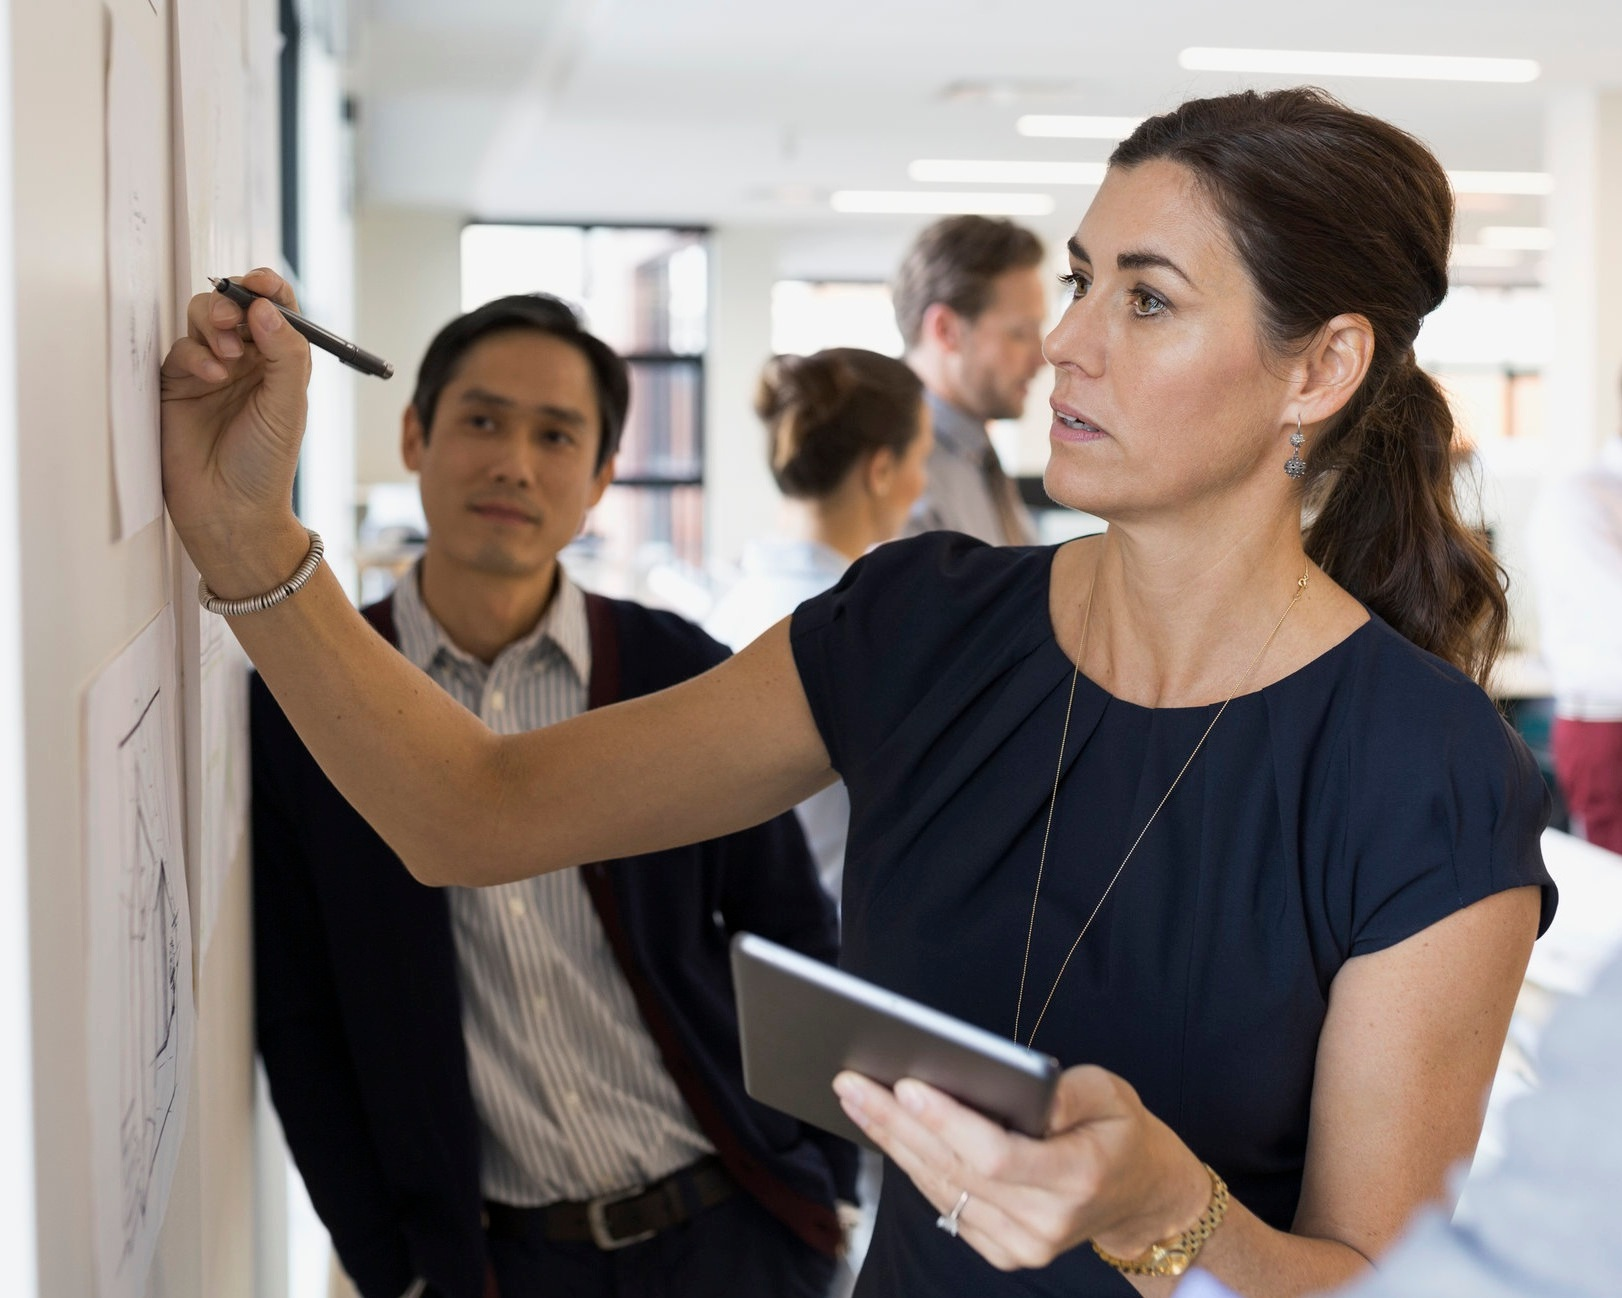 """STRATEGY + EXPERIENCE LEADERS - You'll learn to accurately measure value on investment. Create marketing advantage by engaging patients and families any time, anywhere. At the conclusion of GetConnected 2020, you'll be well-prepared to guide your organization forward using """"big picture"""" insights."""